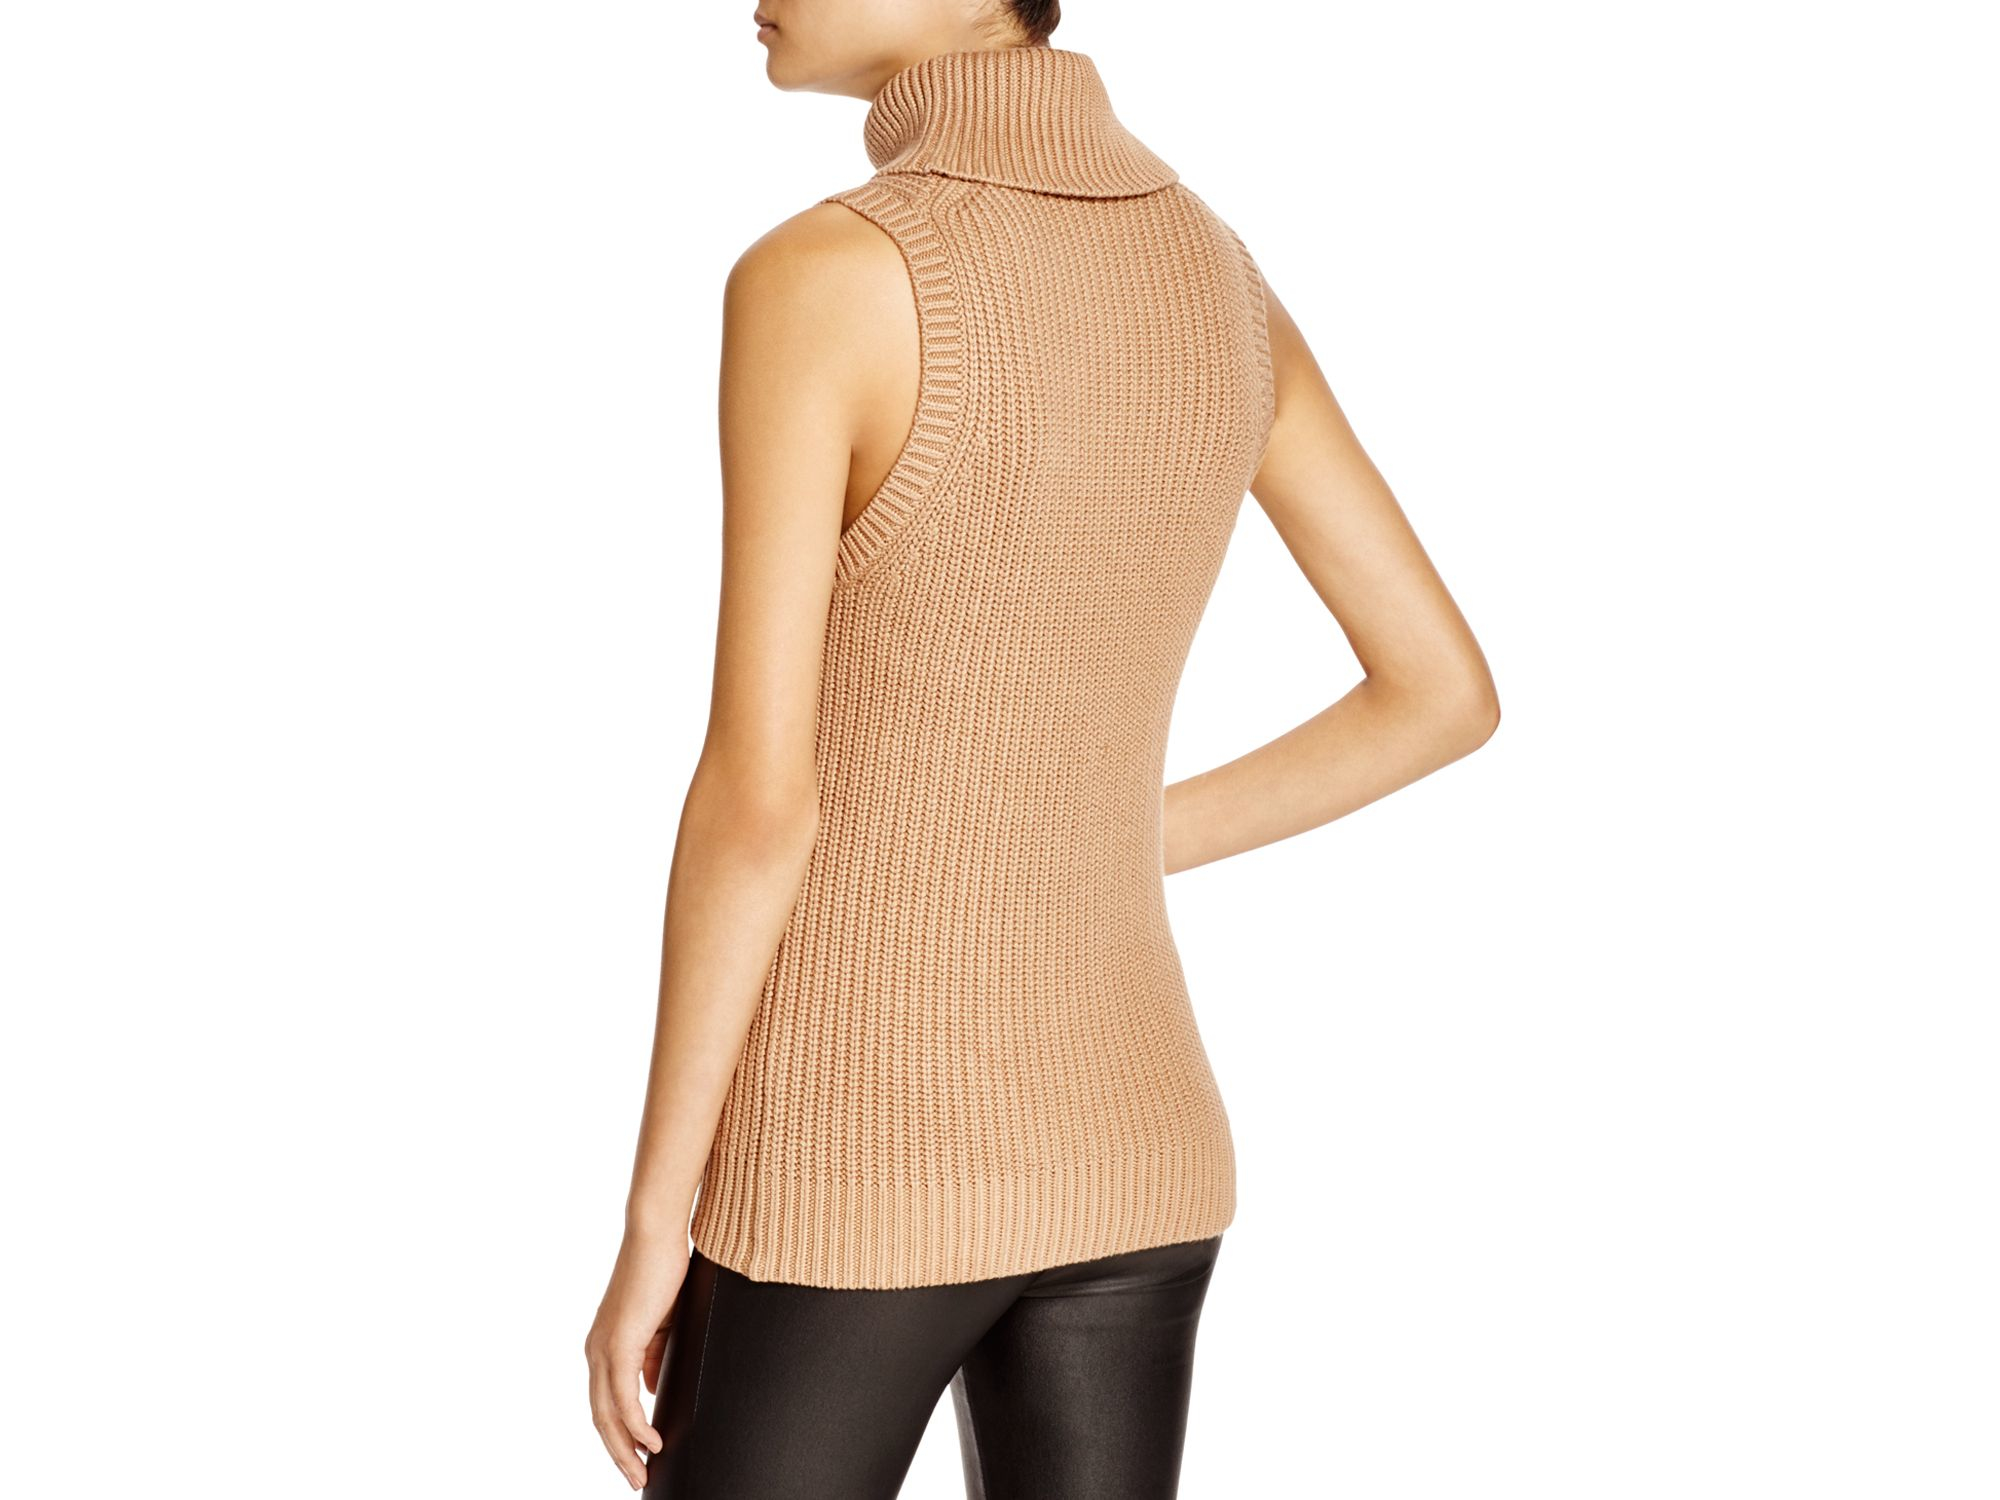 a60e309db87b1 Lyst - MICHAEL Michael Kors Sleeveless Turtleneck Sweater in Natural